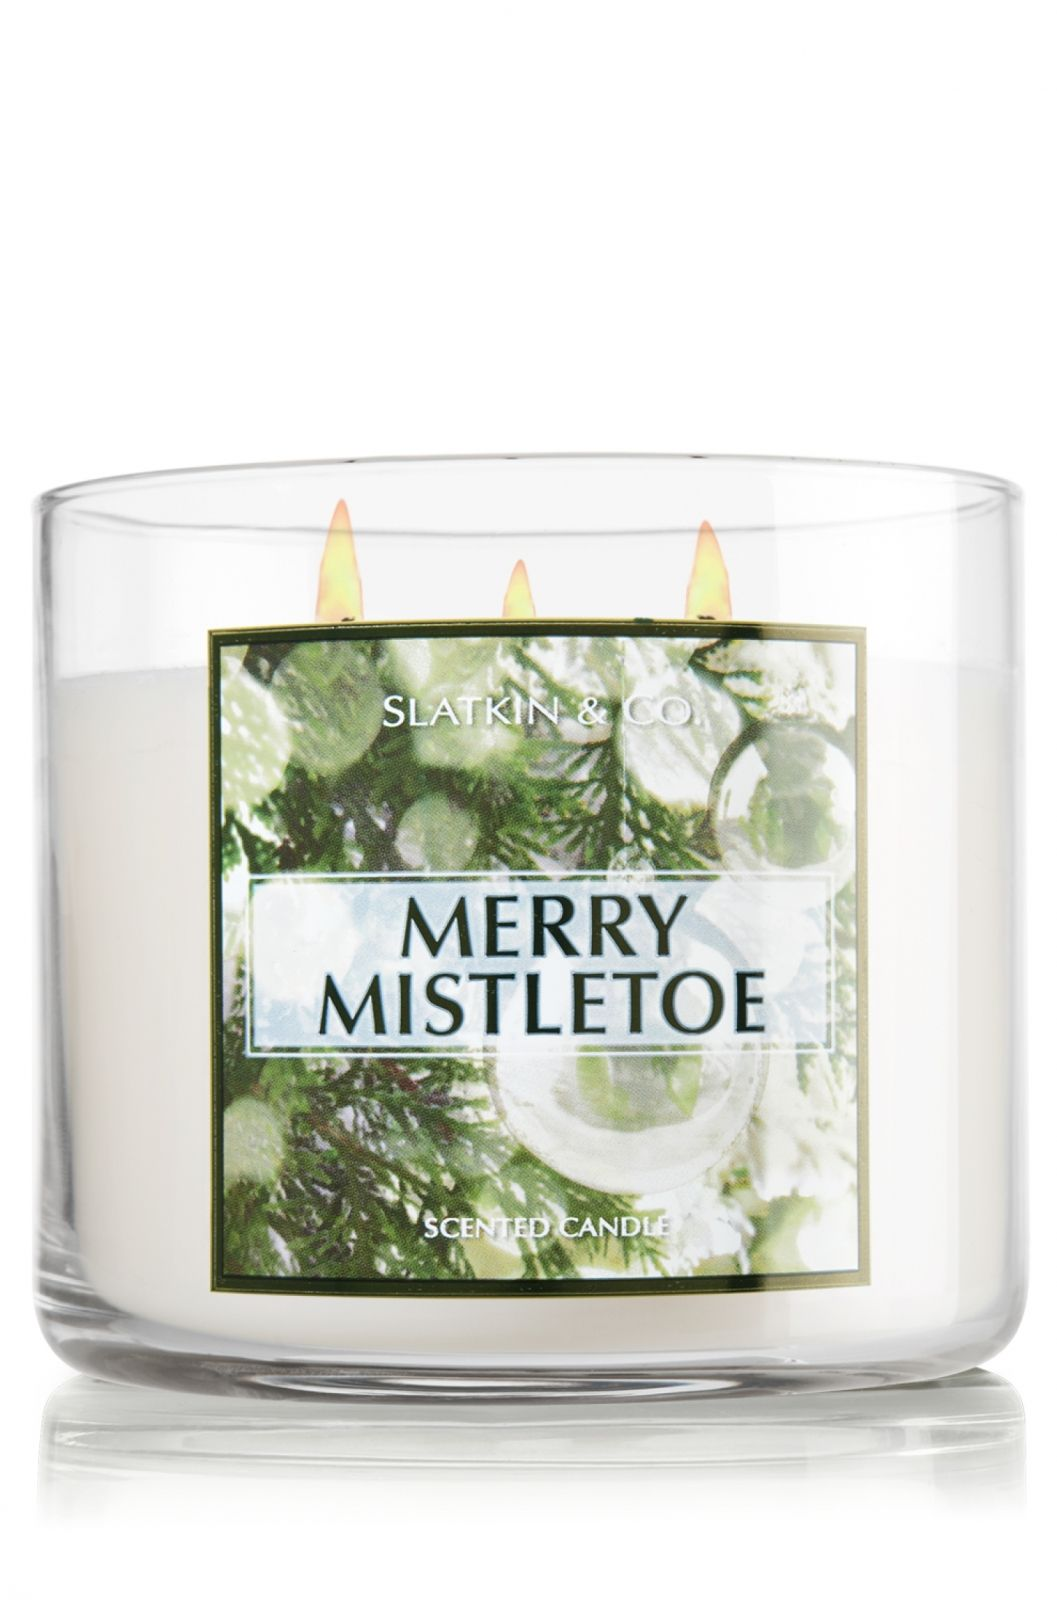 Merry Mistletoe Candles From Bath And Body Works Buying In Bulk